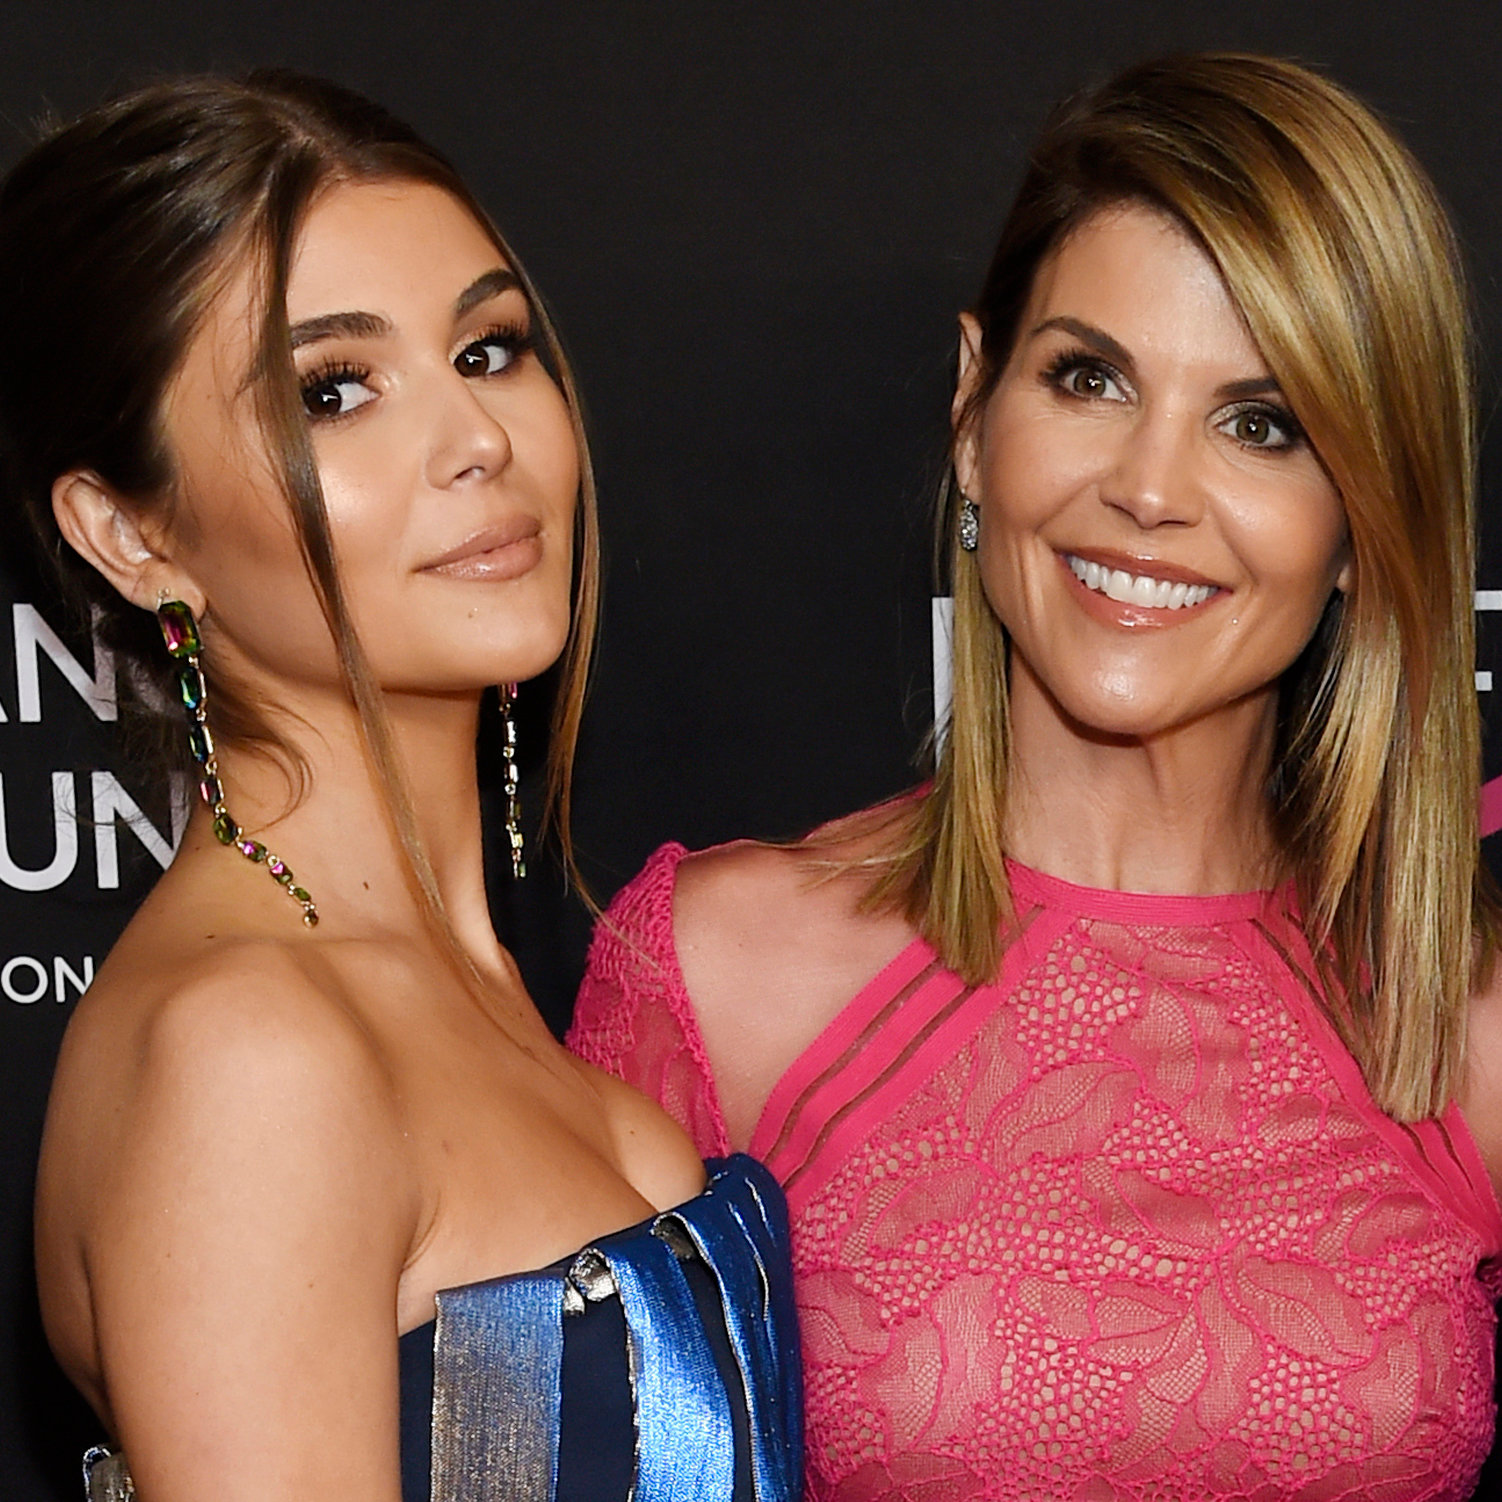 Olivia Jade Parents To Make A DWTS Appearance This Season? Dancing With The Stars